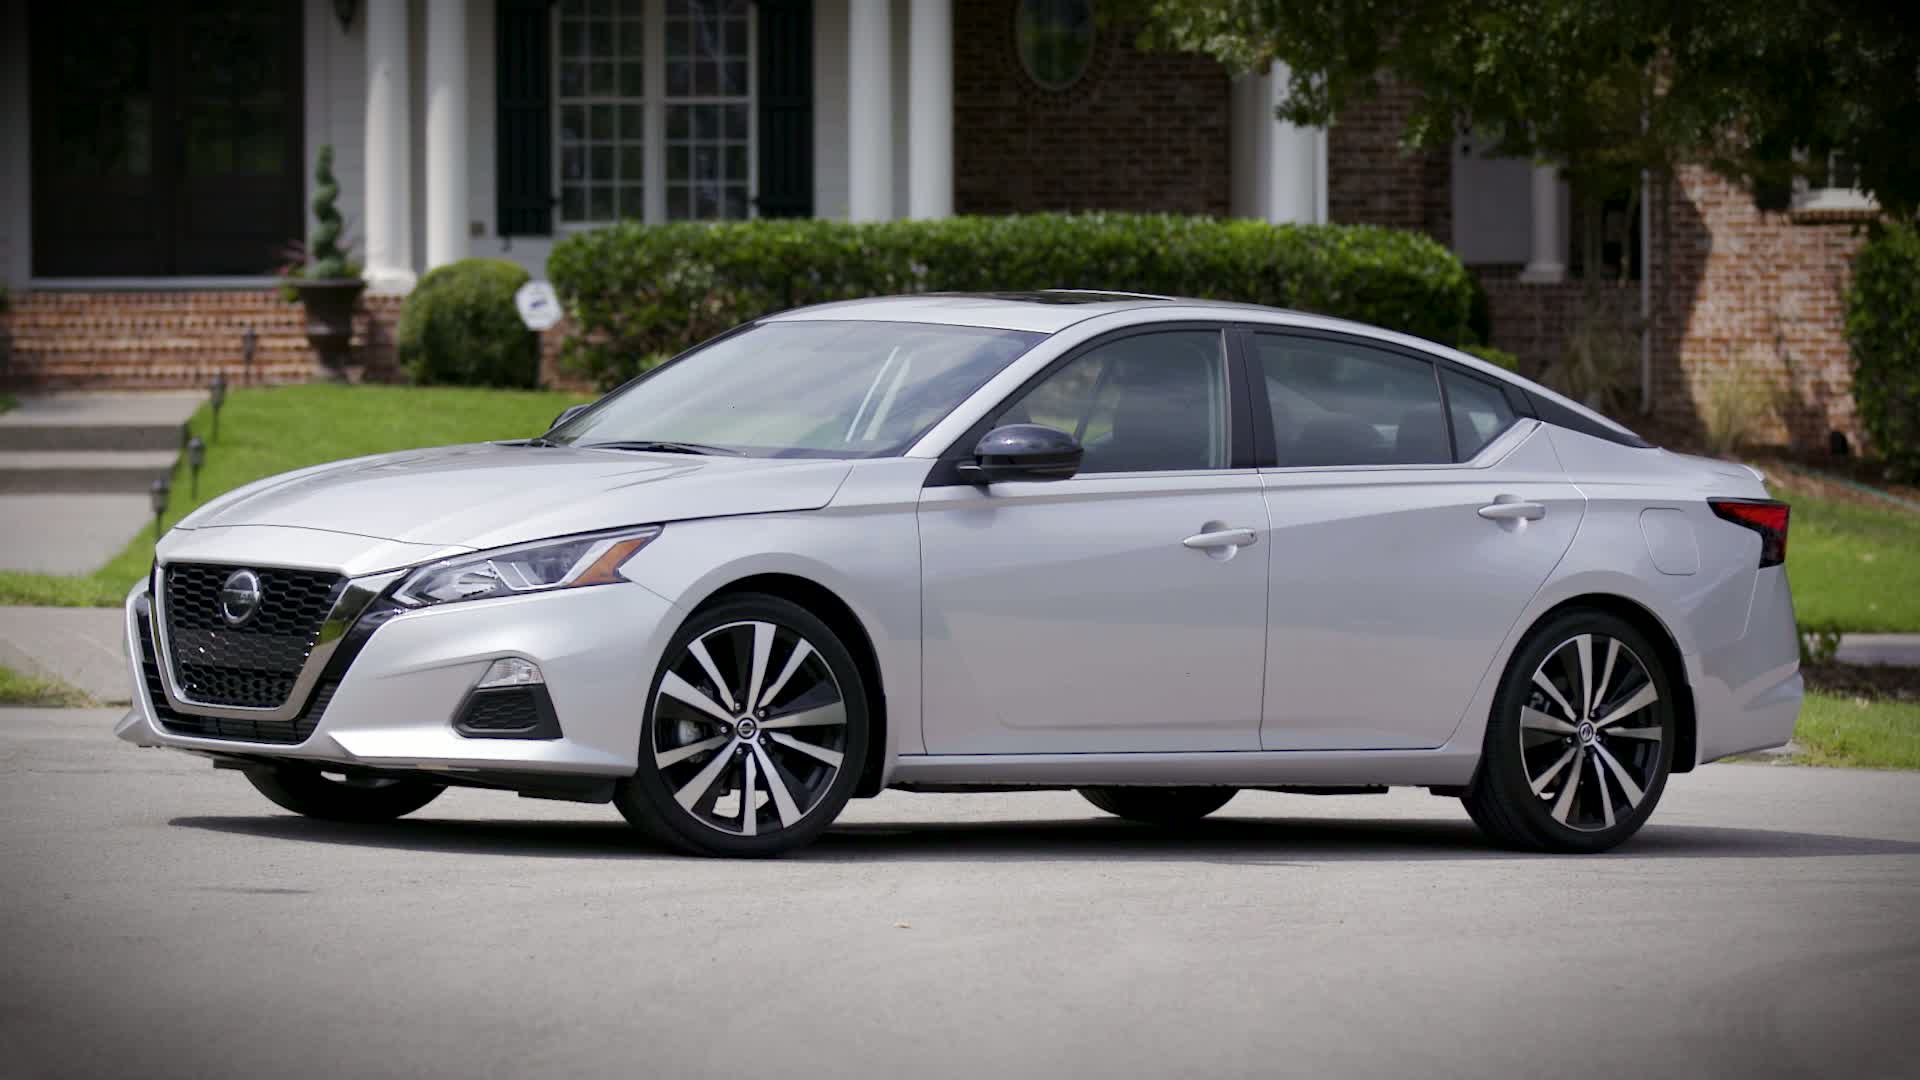 2019 Nissan Altima Press Kit